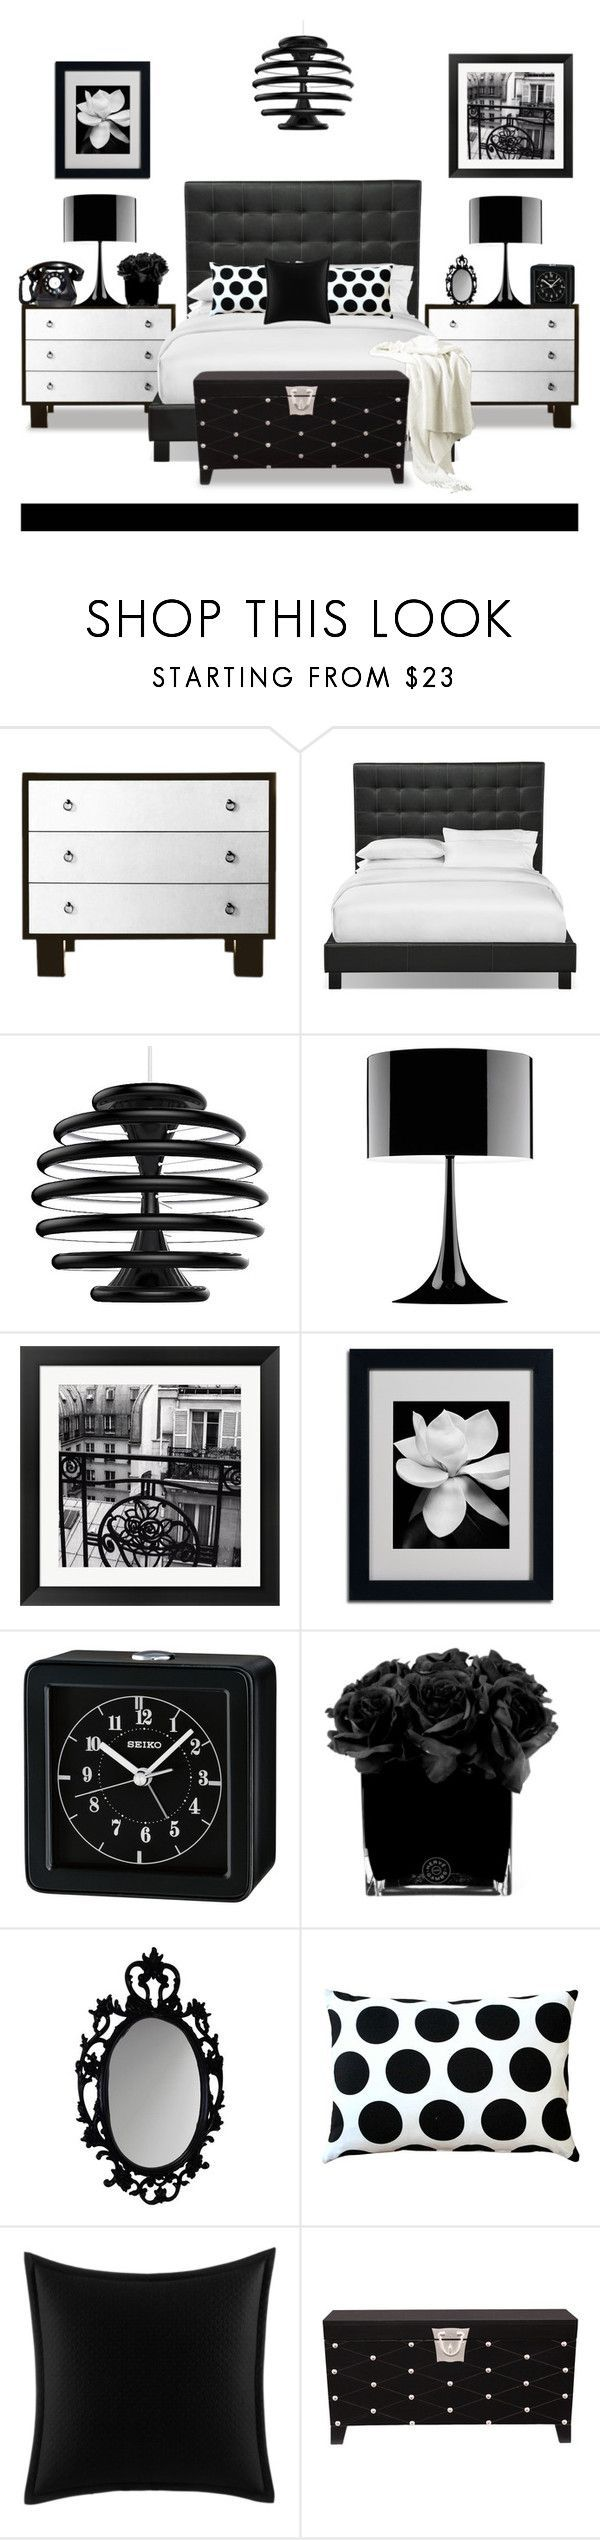 """""""Black and White Bedroom"""" by terry-tlc ❤ liked on Polyvore featuring interior, interiors, interior design, home, home decor, interior decorating, Ilomio, Flos, Evive Designs and Seiko Watches"""